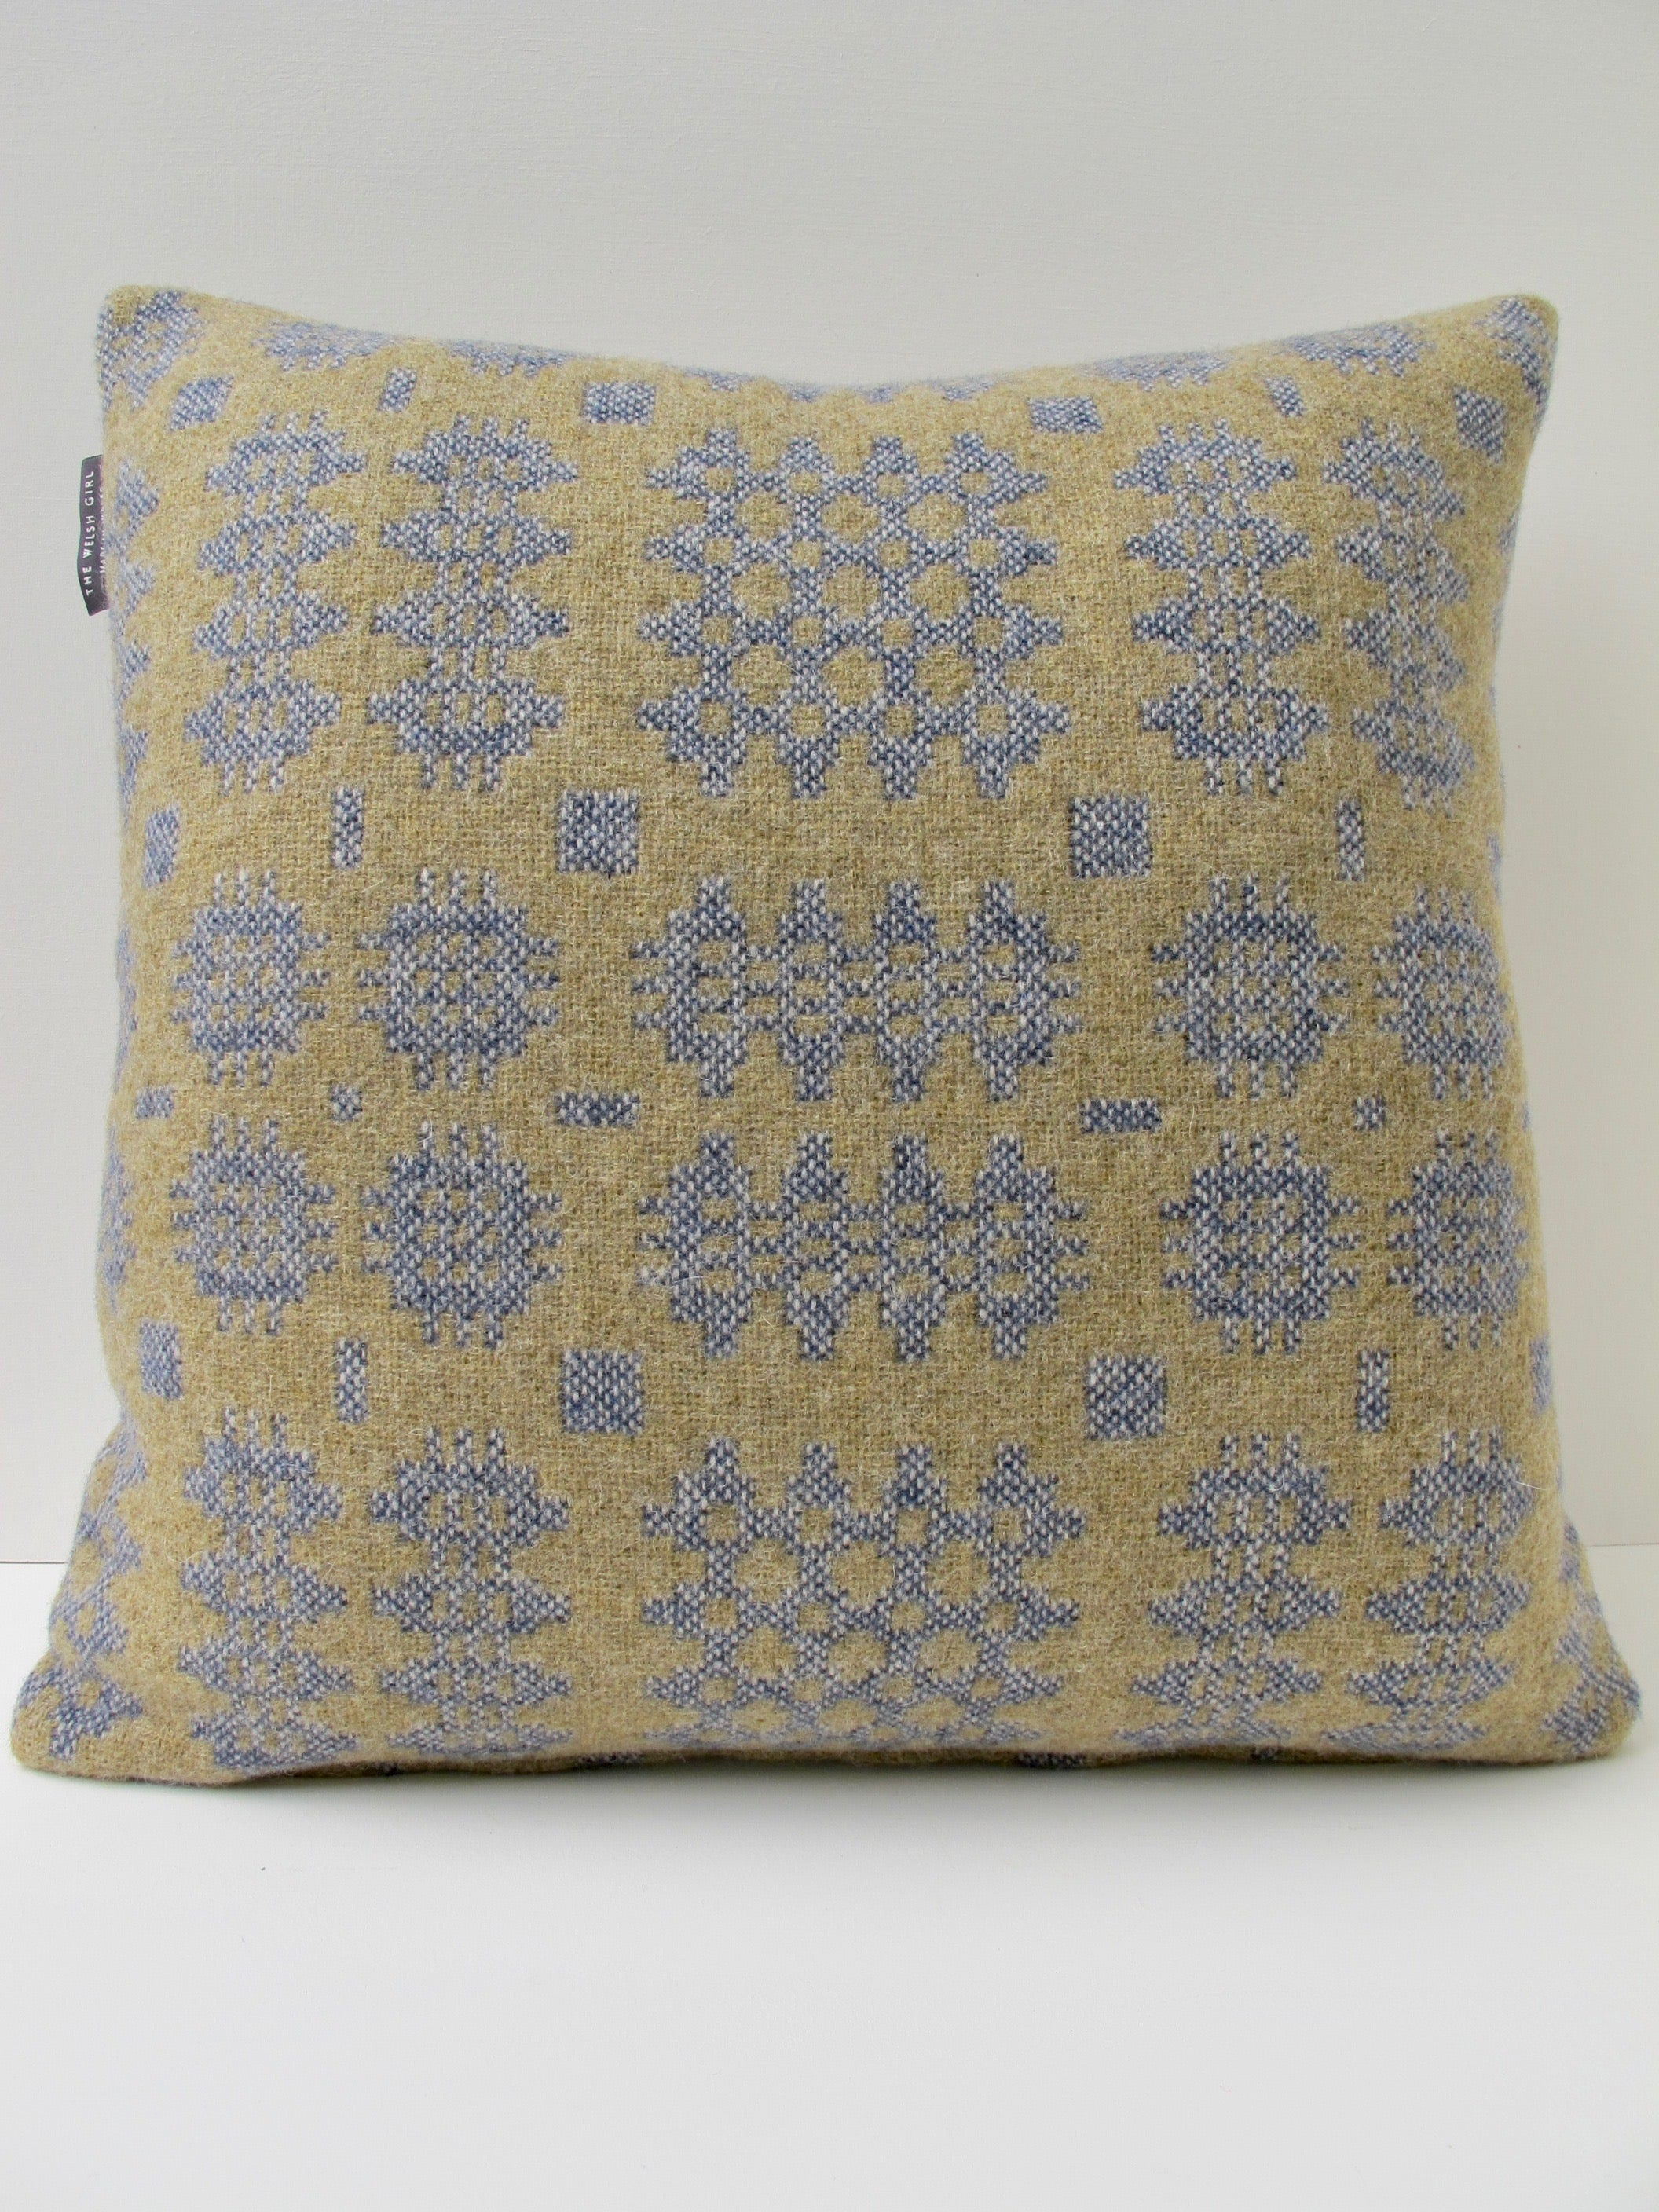 Sand and Denim Tapestry Cushion - 18""